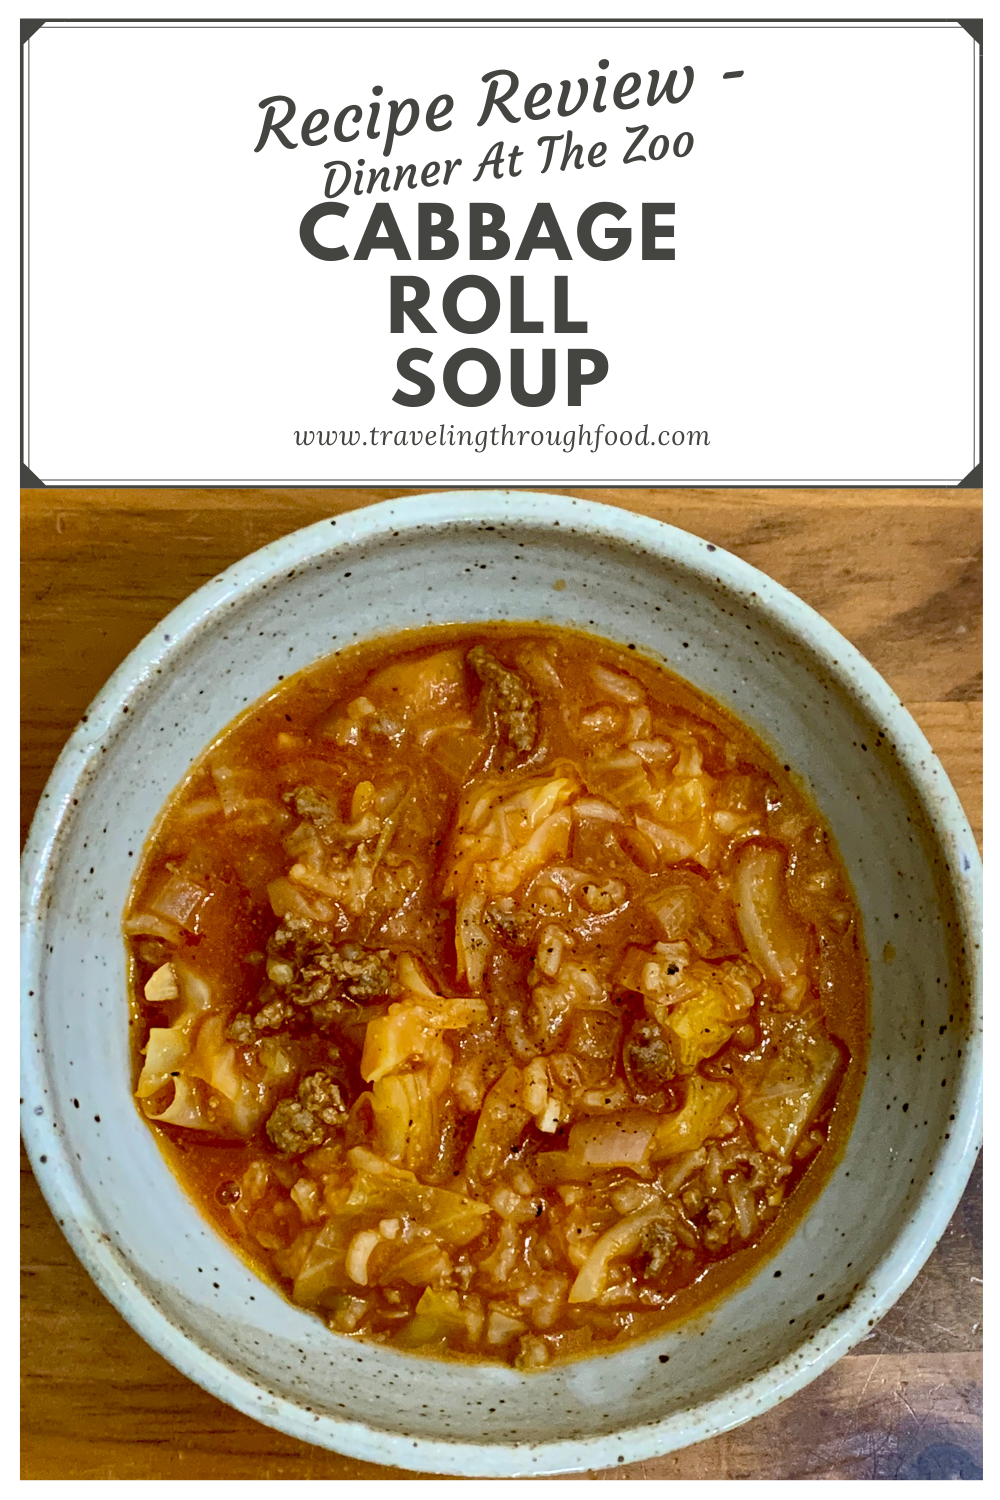 Halupki Stuffed Cabbage Soup aka Cabbage Roll Soup Dinner At The Zoo Recipe Review Traveling Through Food Blog